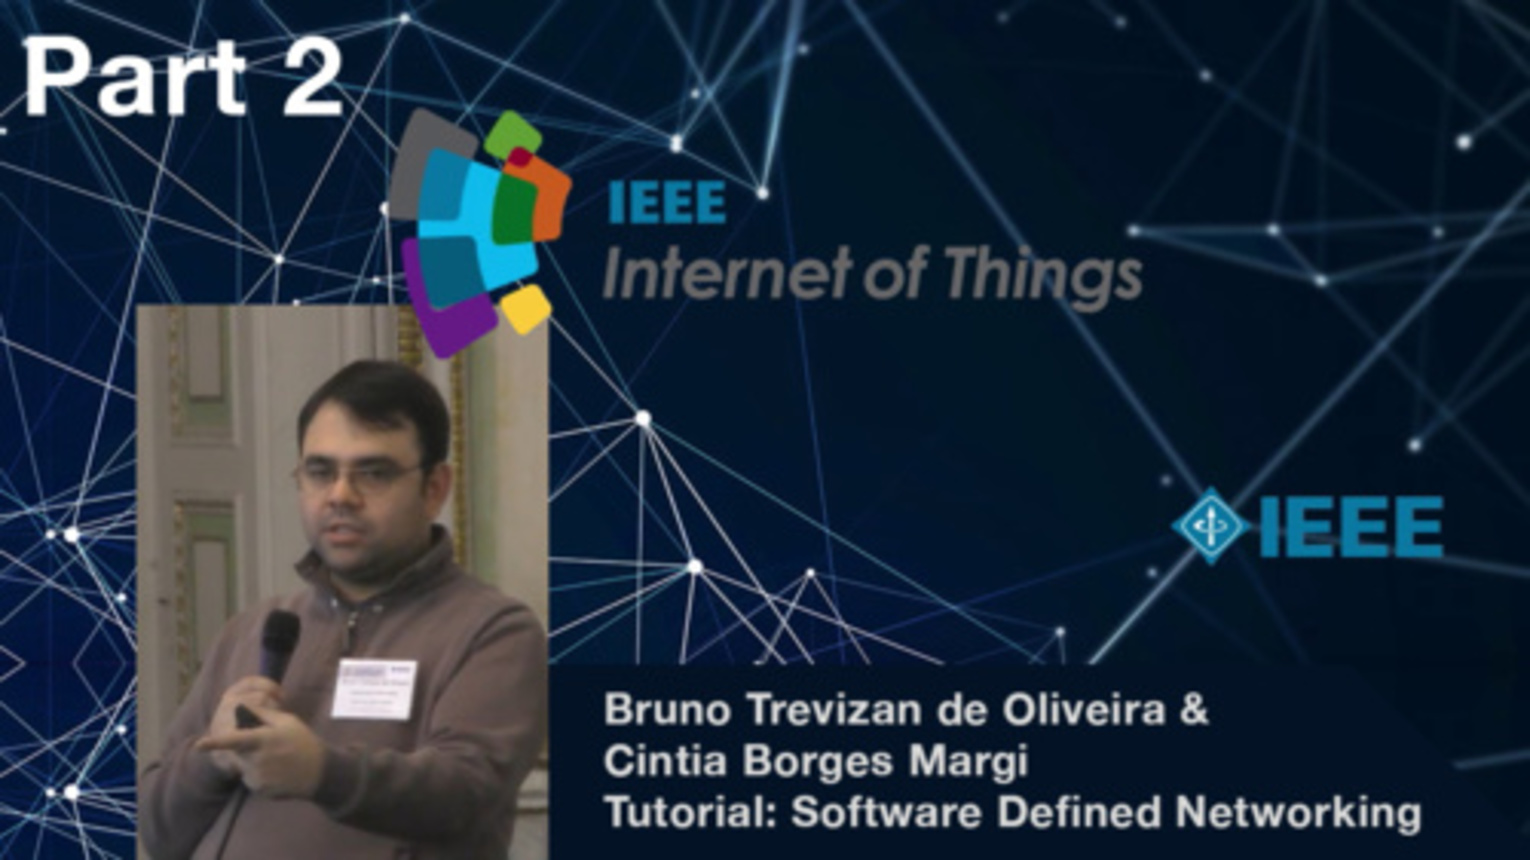 Part 2: Software-defined Networking in the Wireless Sensor Networks and the IoT Context - Bruno Trevizan de Oliveira and Cintia Borges Margi, IEEE WF-IoT 2015